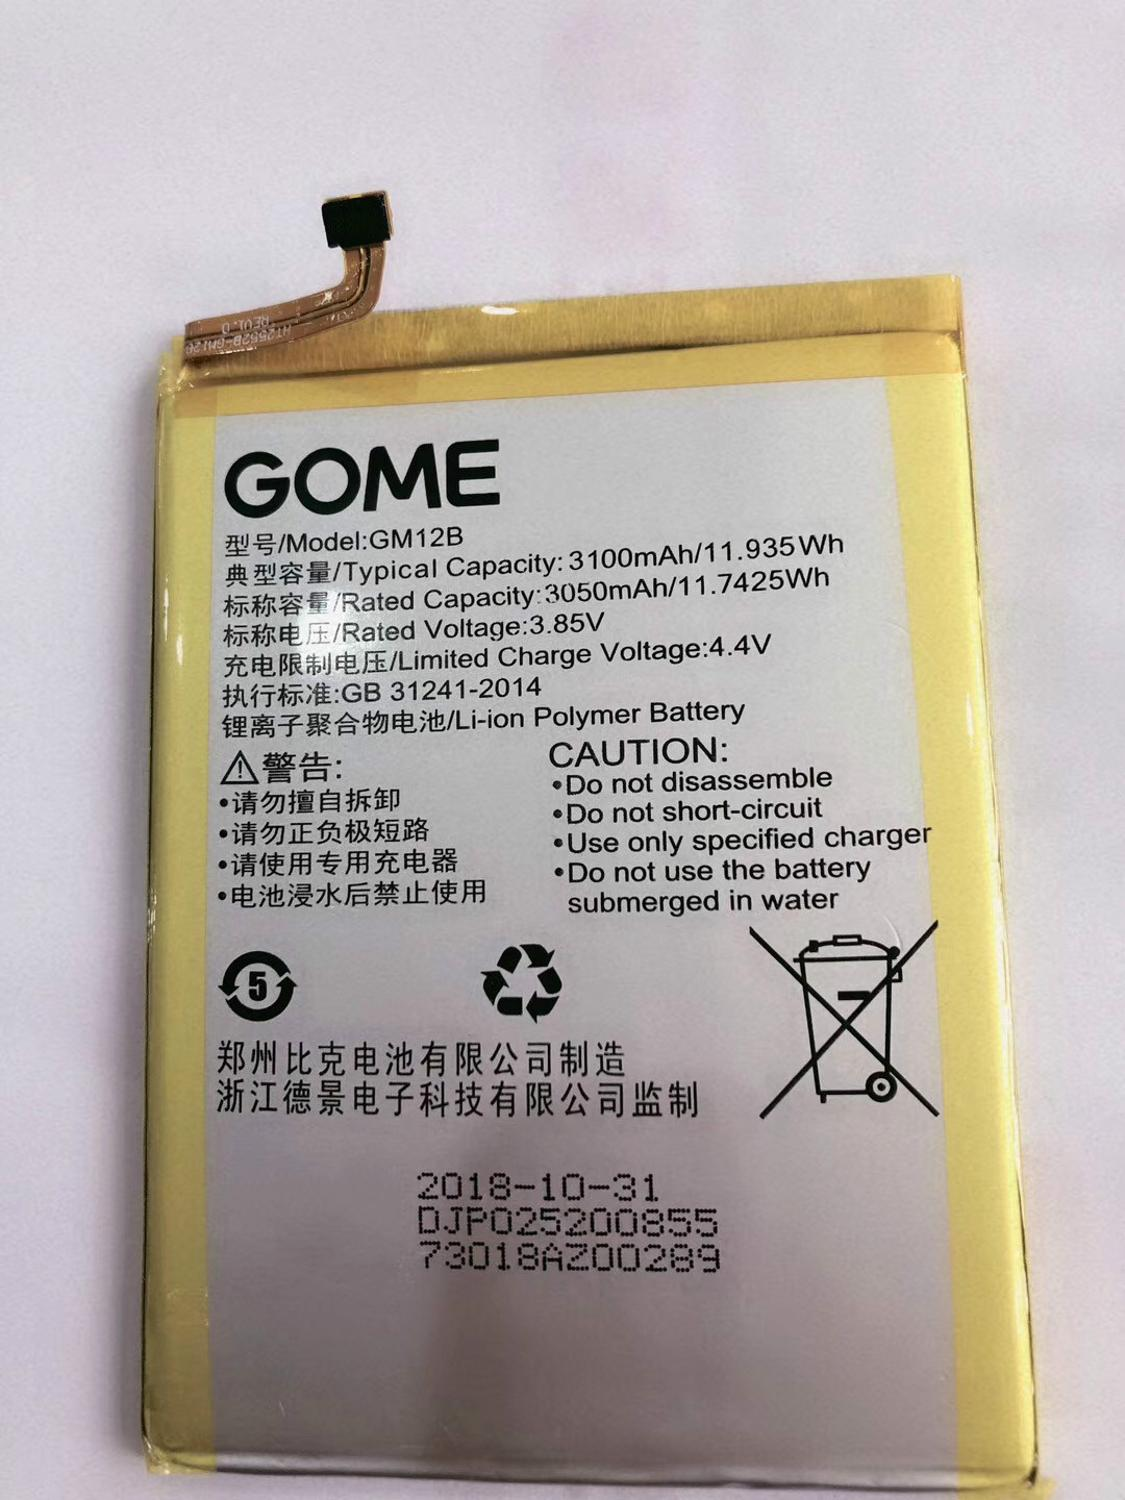 3100mAh/11.935Wh GM12B Replacement Battery For GOME U7 Smartphone Built-in Li-ion Bateria Li-Polymer Batterie